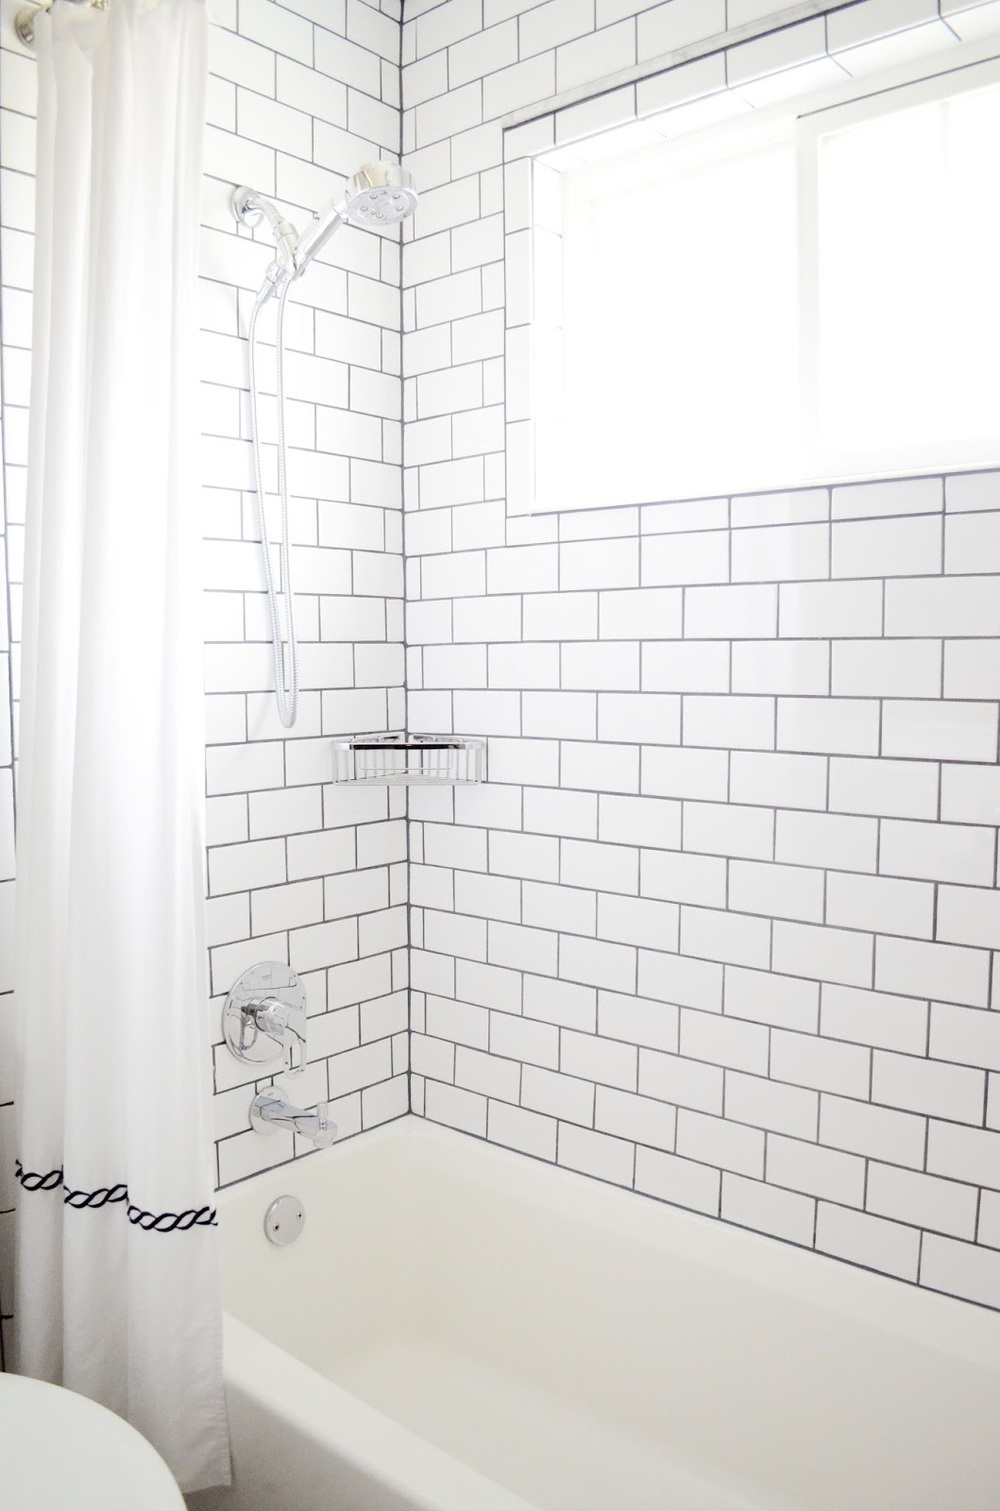 Bathroom_Subway_Tile_Dark_Grout.jpg